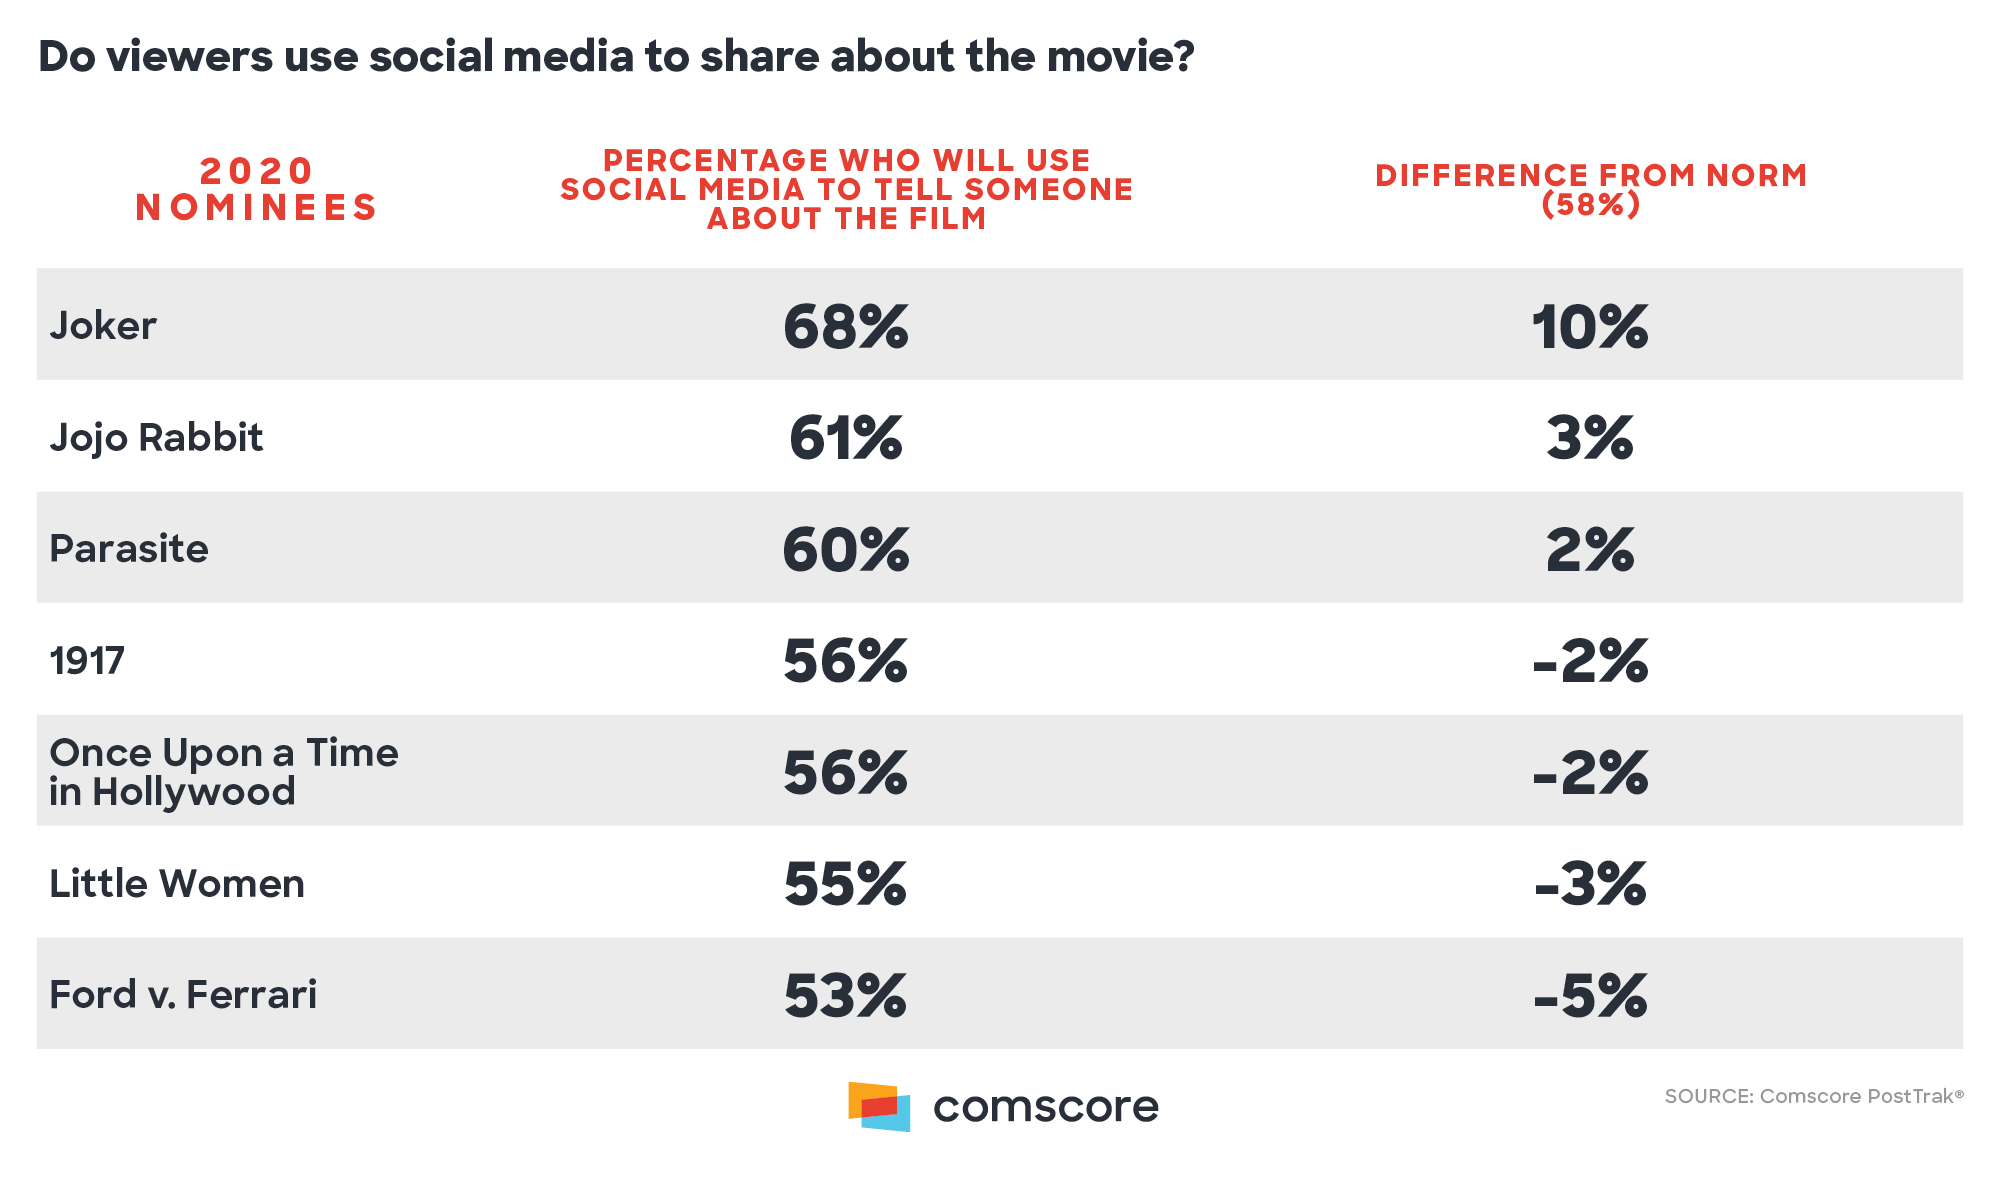 Do Viewers use social media to share about themovie?